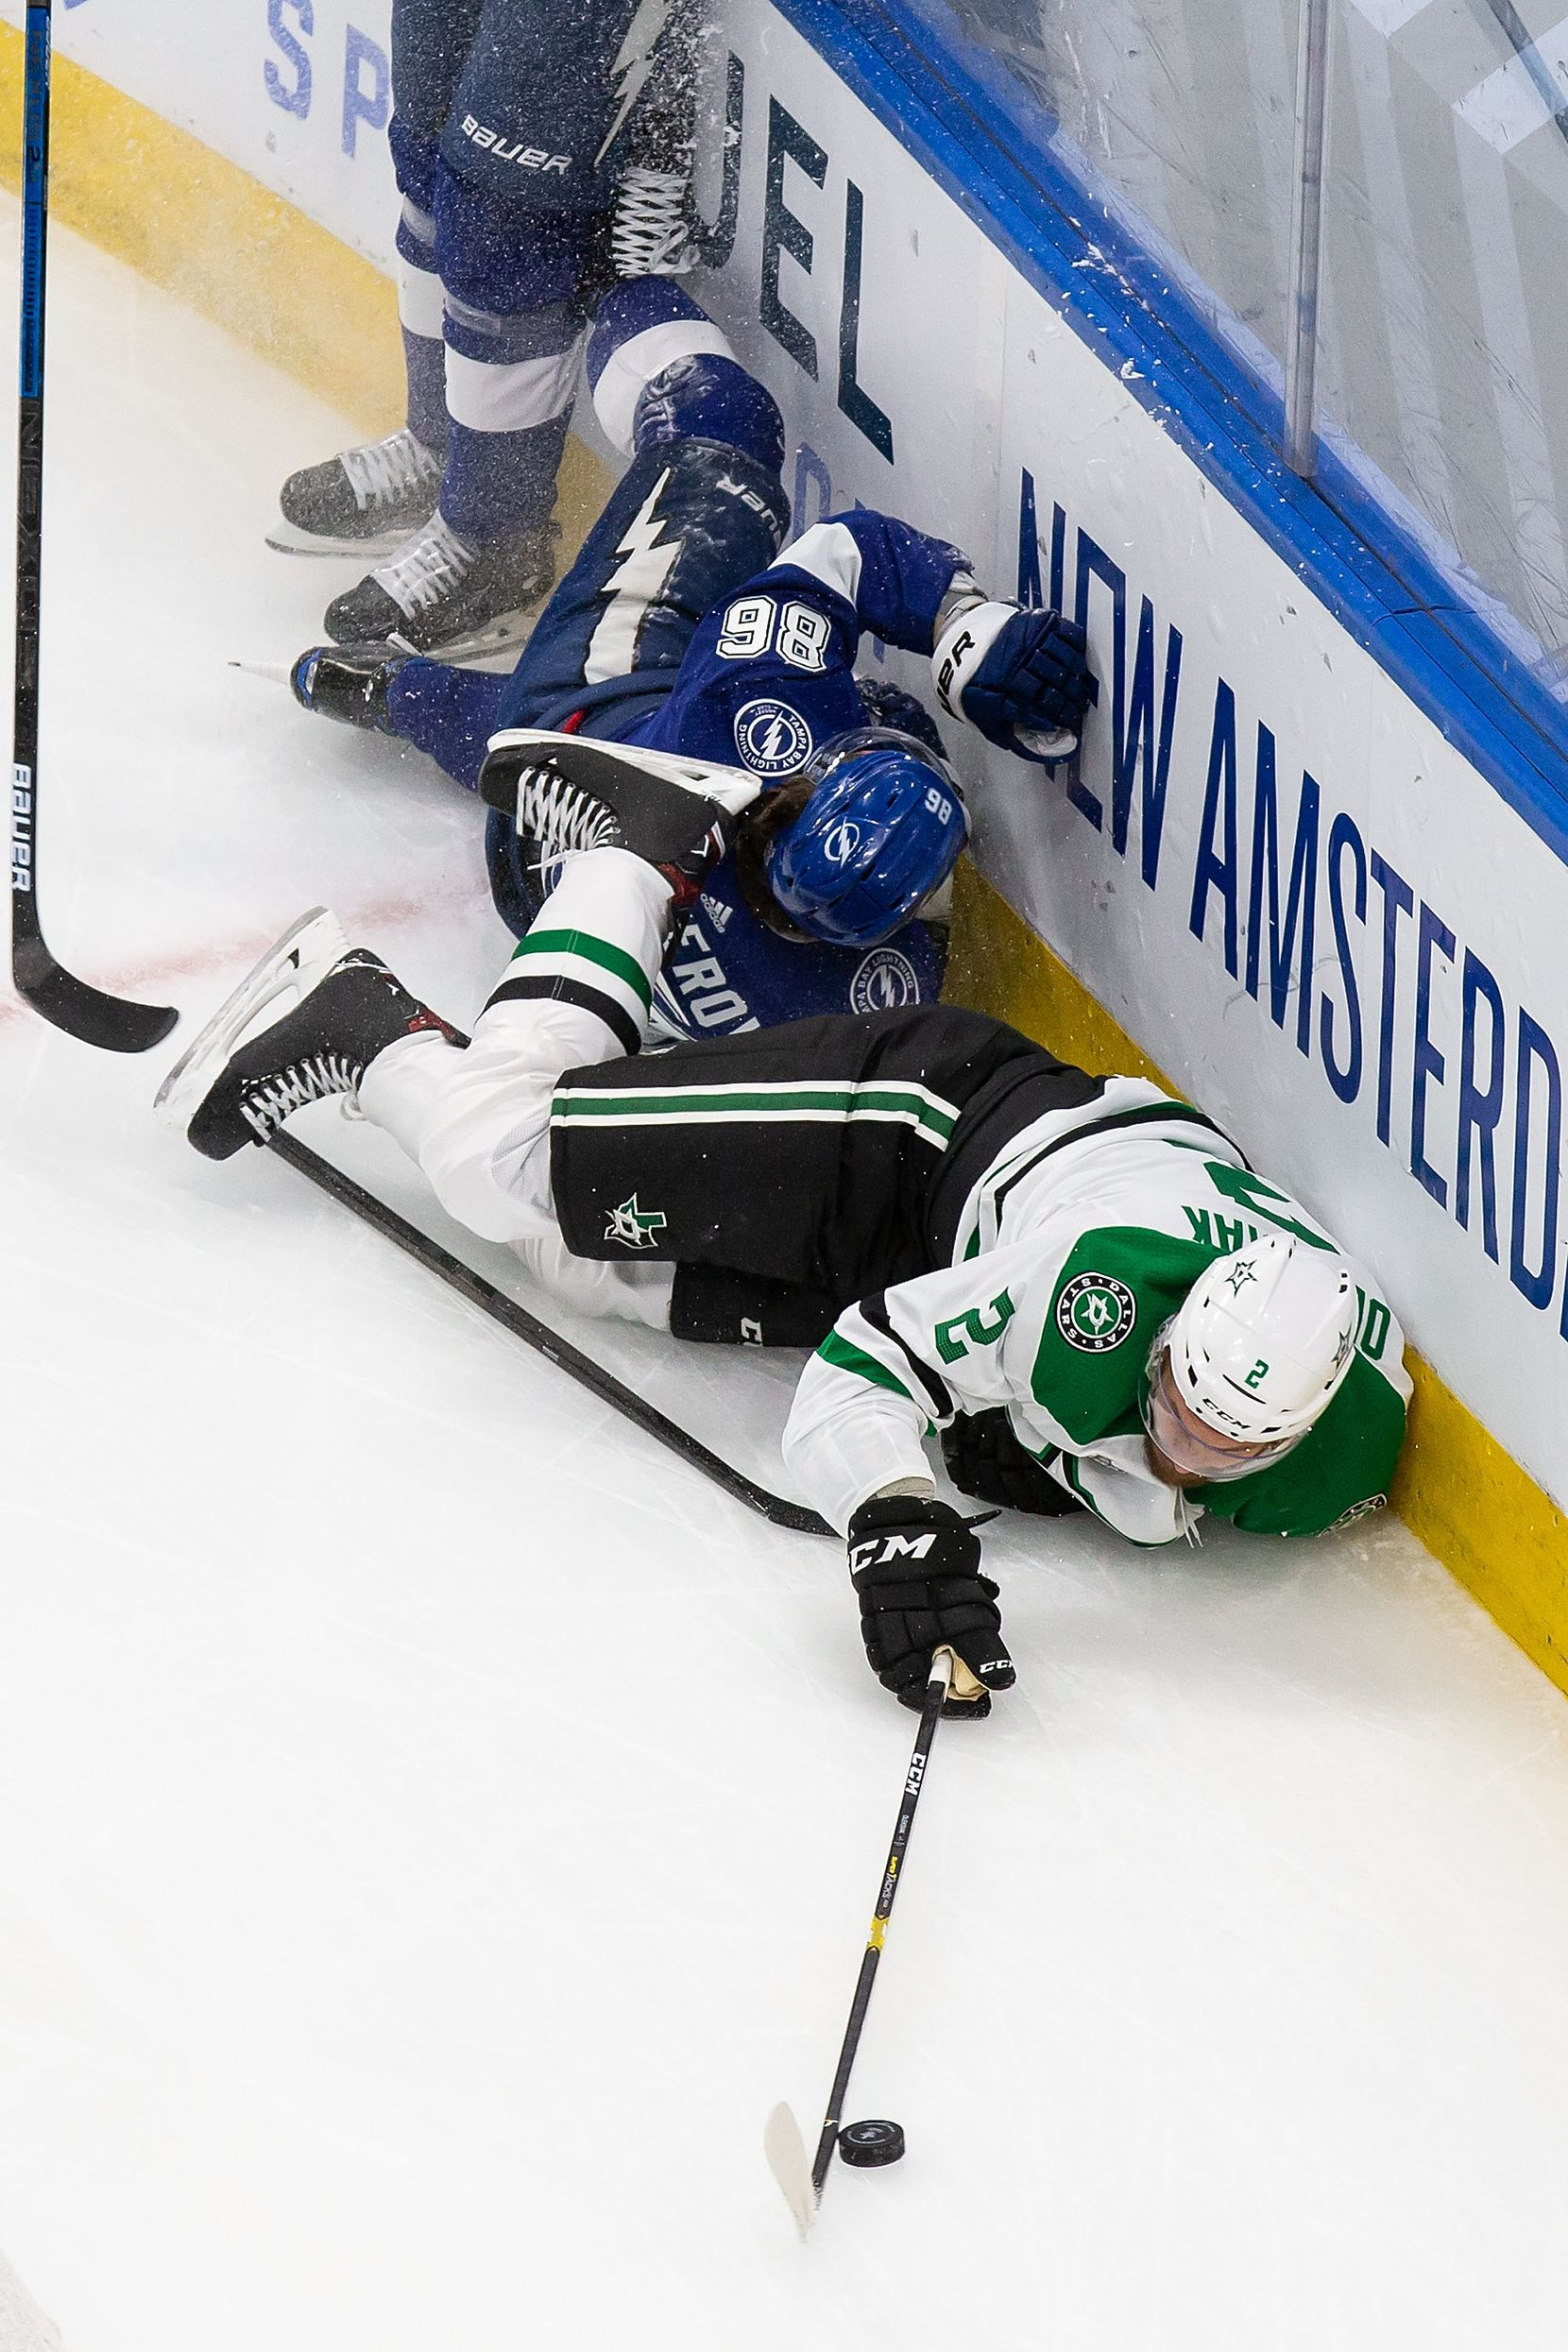 Jamie Oleksiak (2) of the Dallas Stars collides with Nikita Kucherov (86) of the Tampa Bay Lightning during Game Two of the Stanley Cup Final at Rogers Place in Edmonton, Alberta, Canada on Monday, September 21, 2020. (Codie McLachlan/Special Contributor)